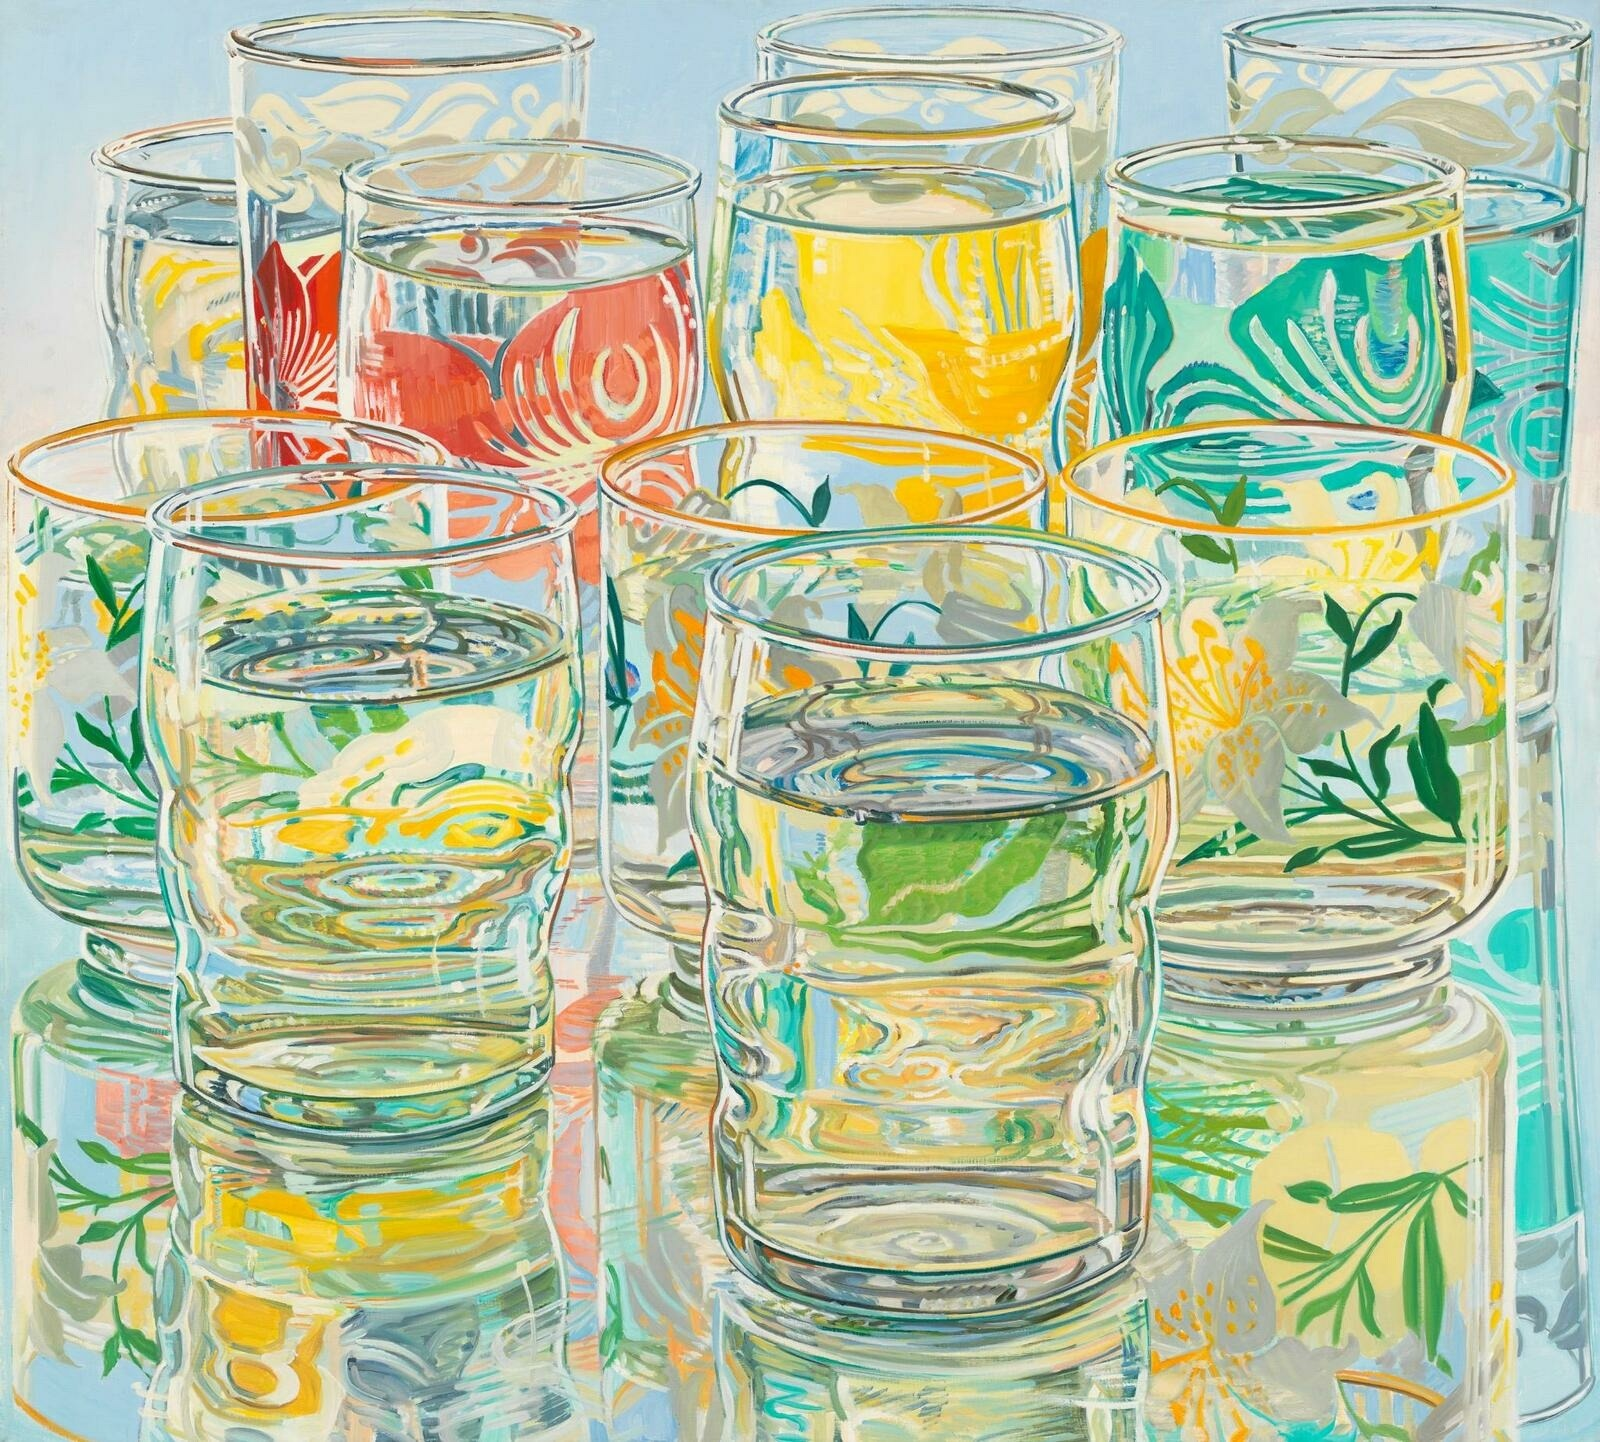 Janet Fish, Painted Water Glasses, 1974